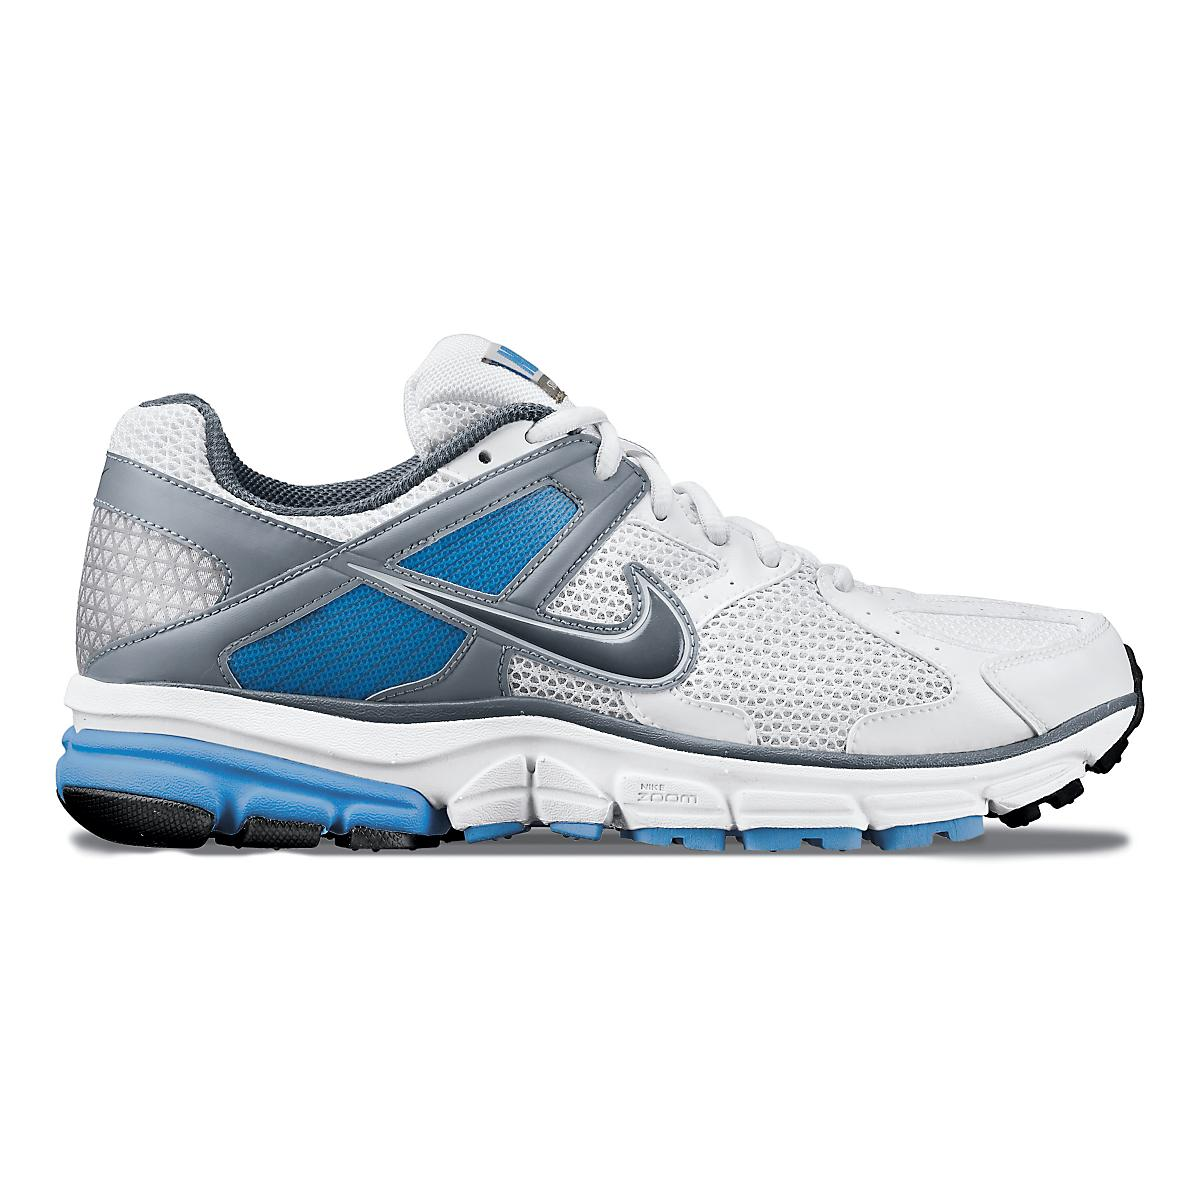 best service ccdc6 9e466 Running Zoom Runner At Womens Sports Nike Triax 14 Shoe Road ...